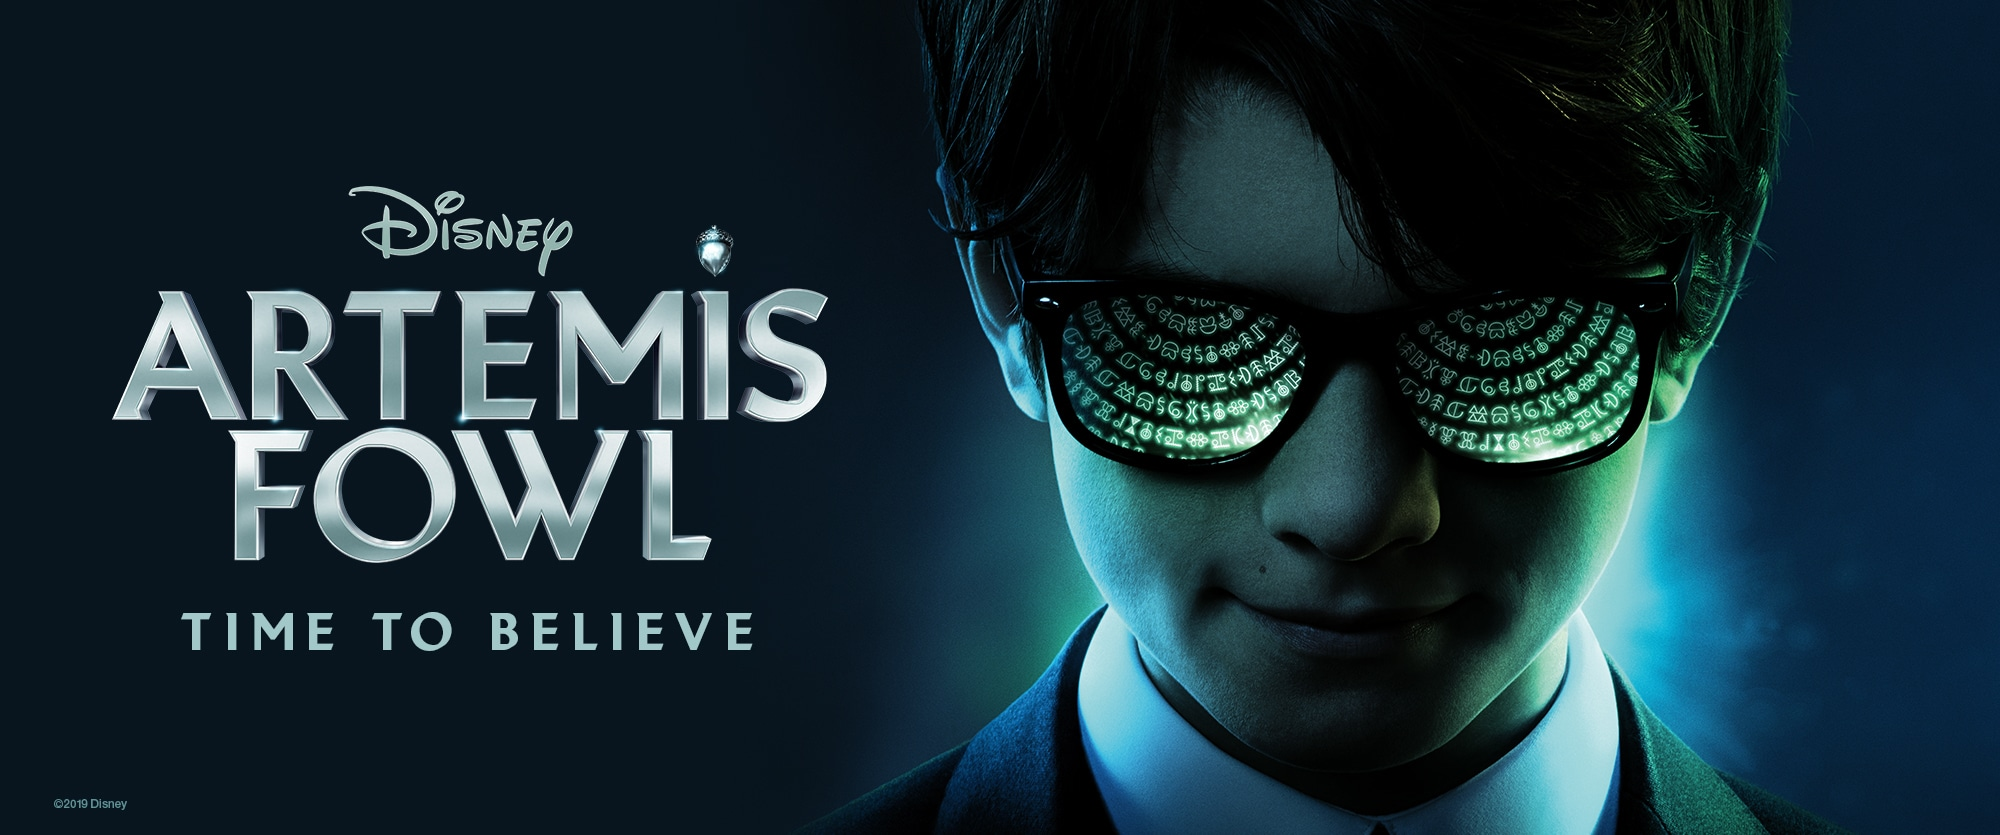 New_Artemis Fowl_Movie Page_Hero Banner 2